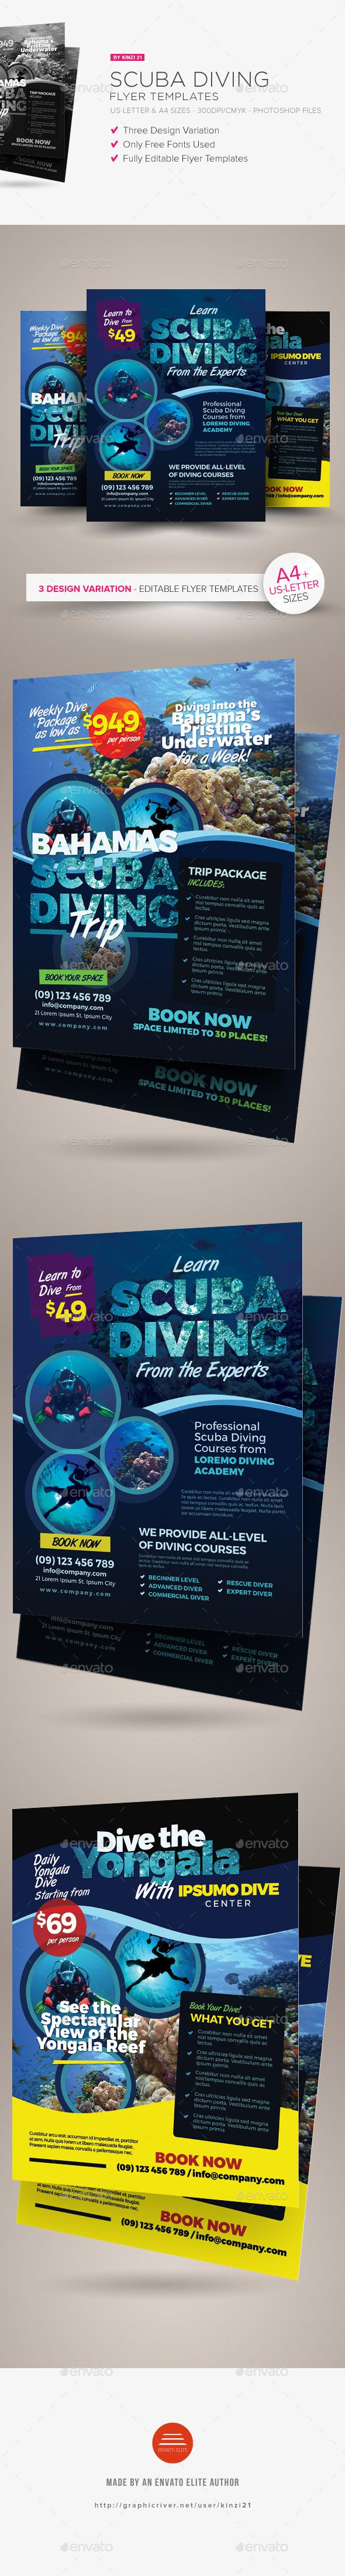 Scuba Diving Flyer Templates Flyer Template Scubas And Template